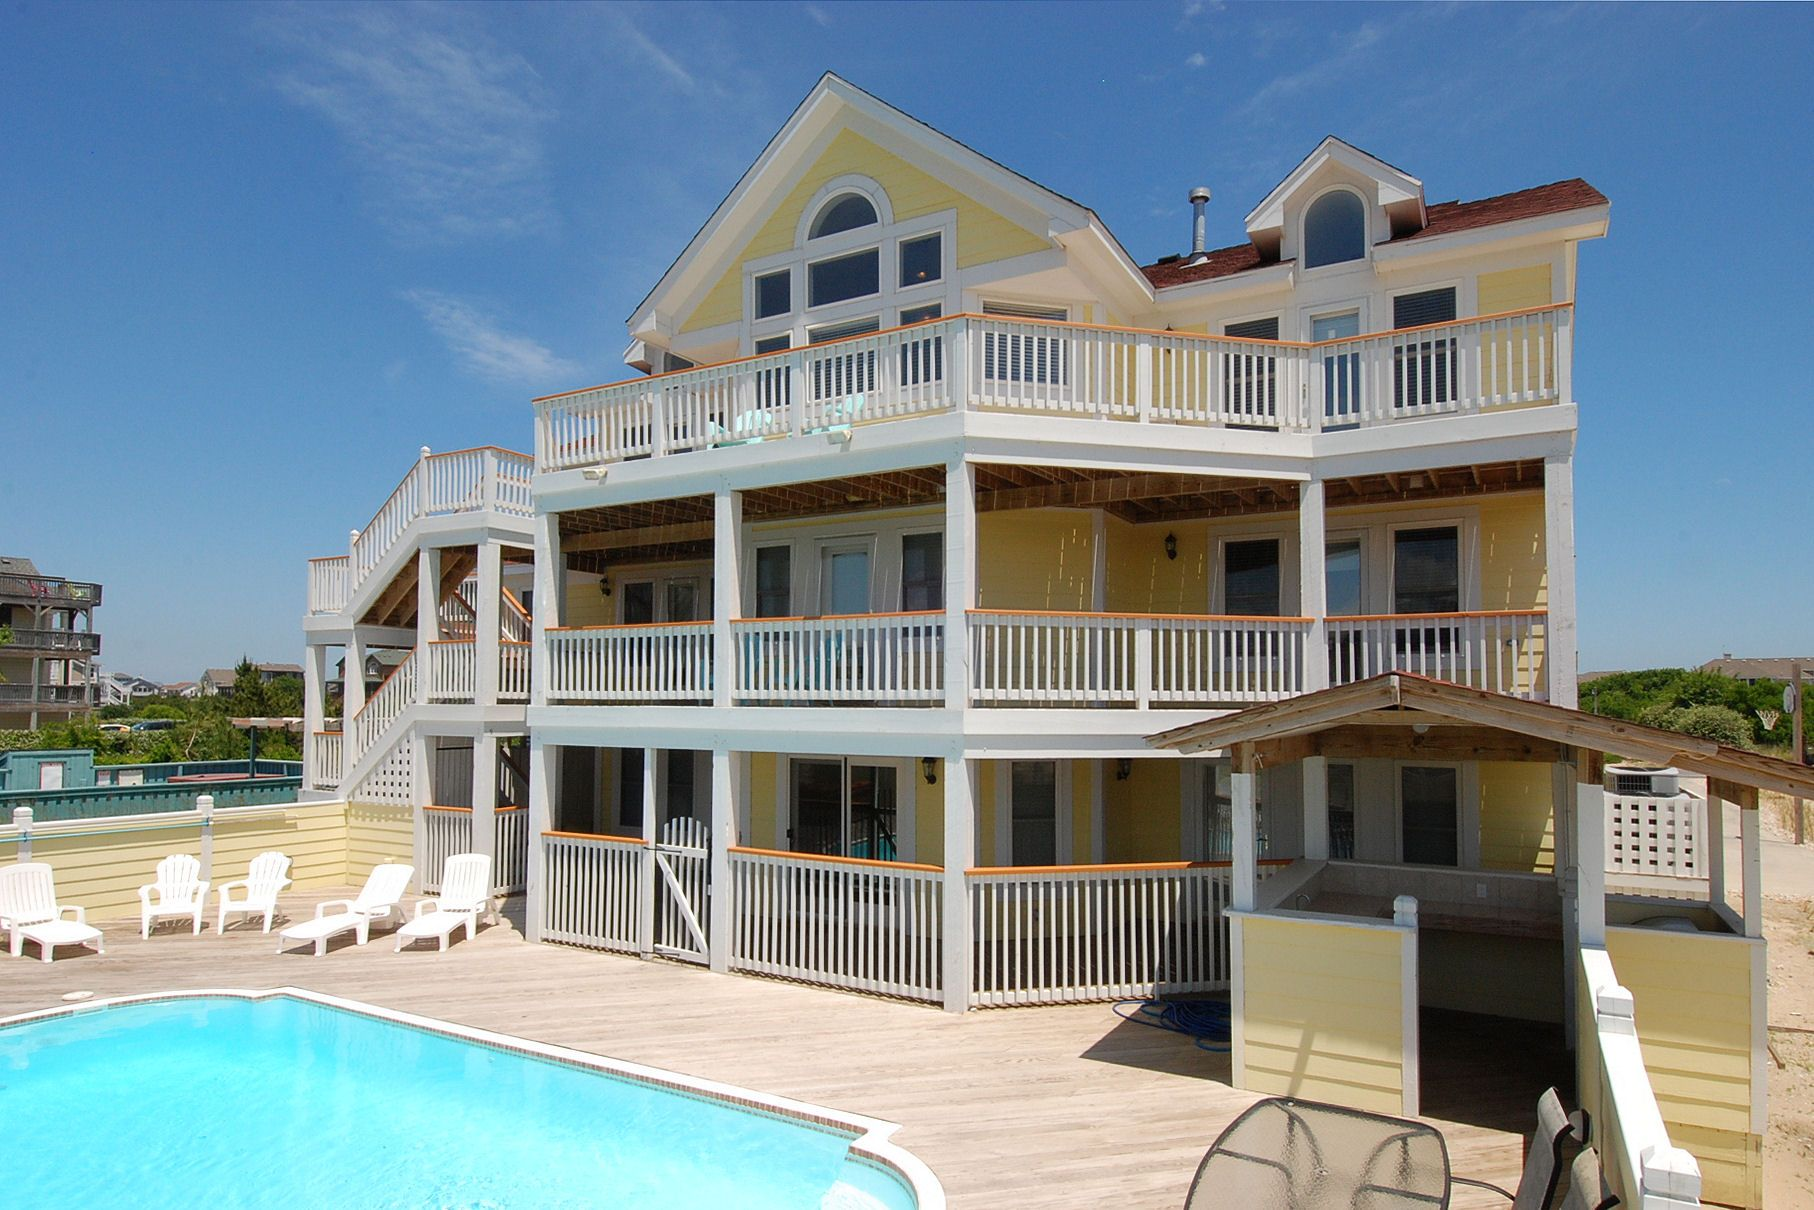 Big kahuna with images outer banks rentals obx